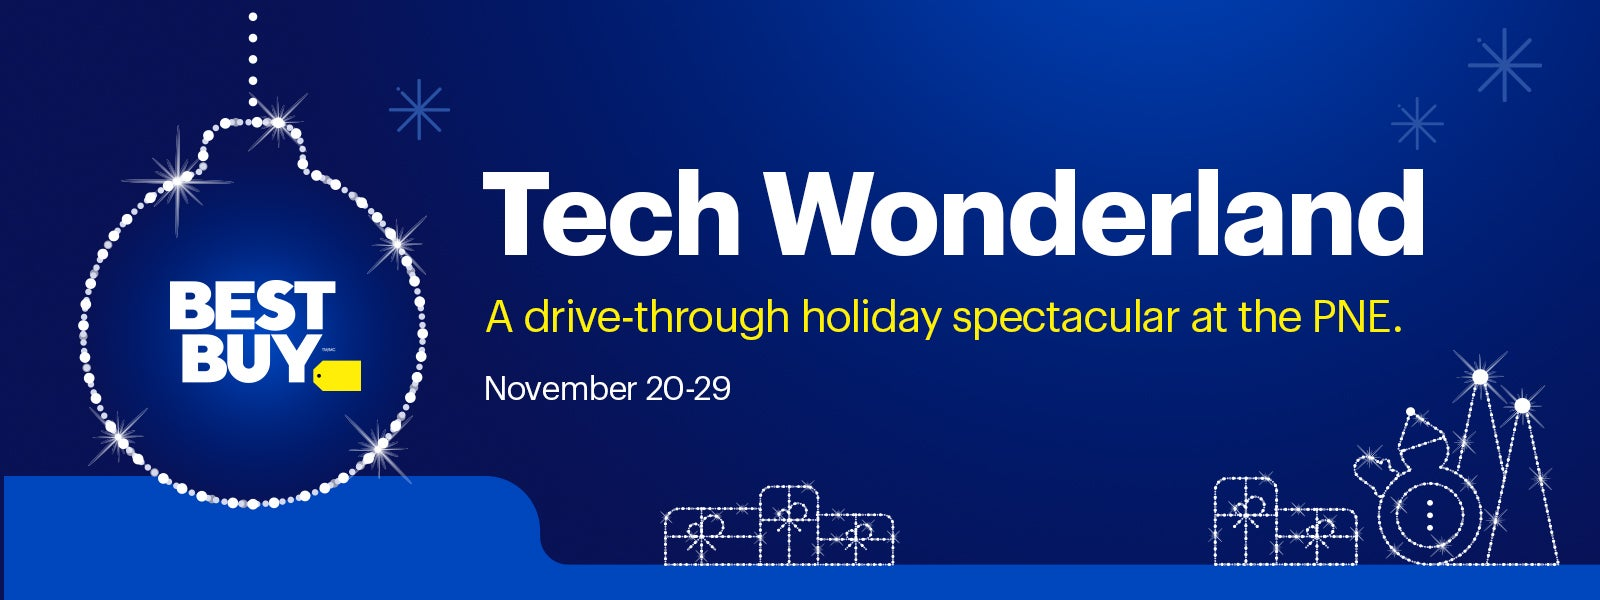 Best Buy Tech Wonderland